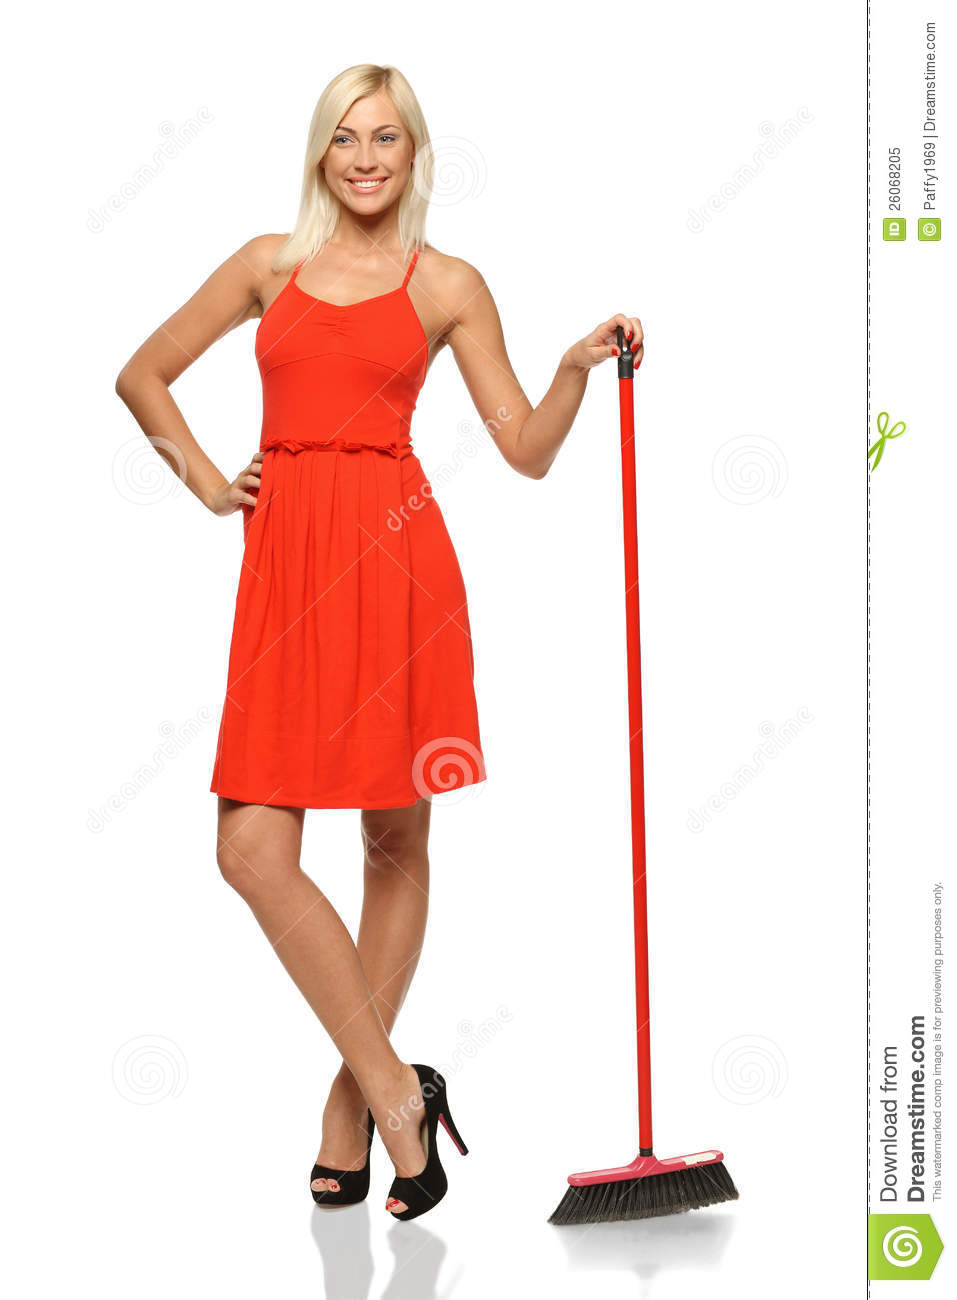 Girl Standing Sideways Looking Up Female standing with broom